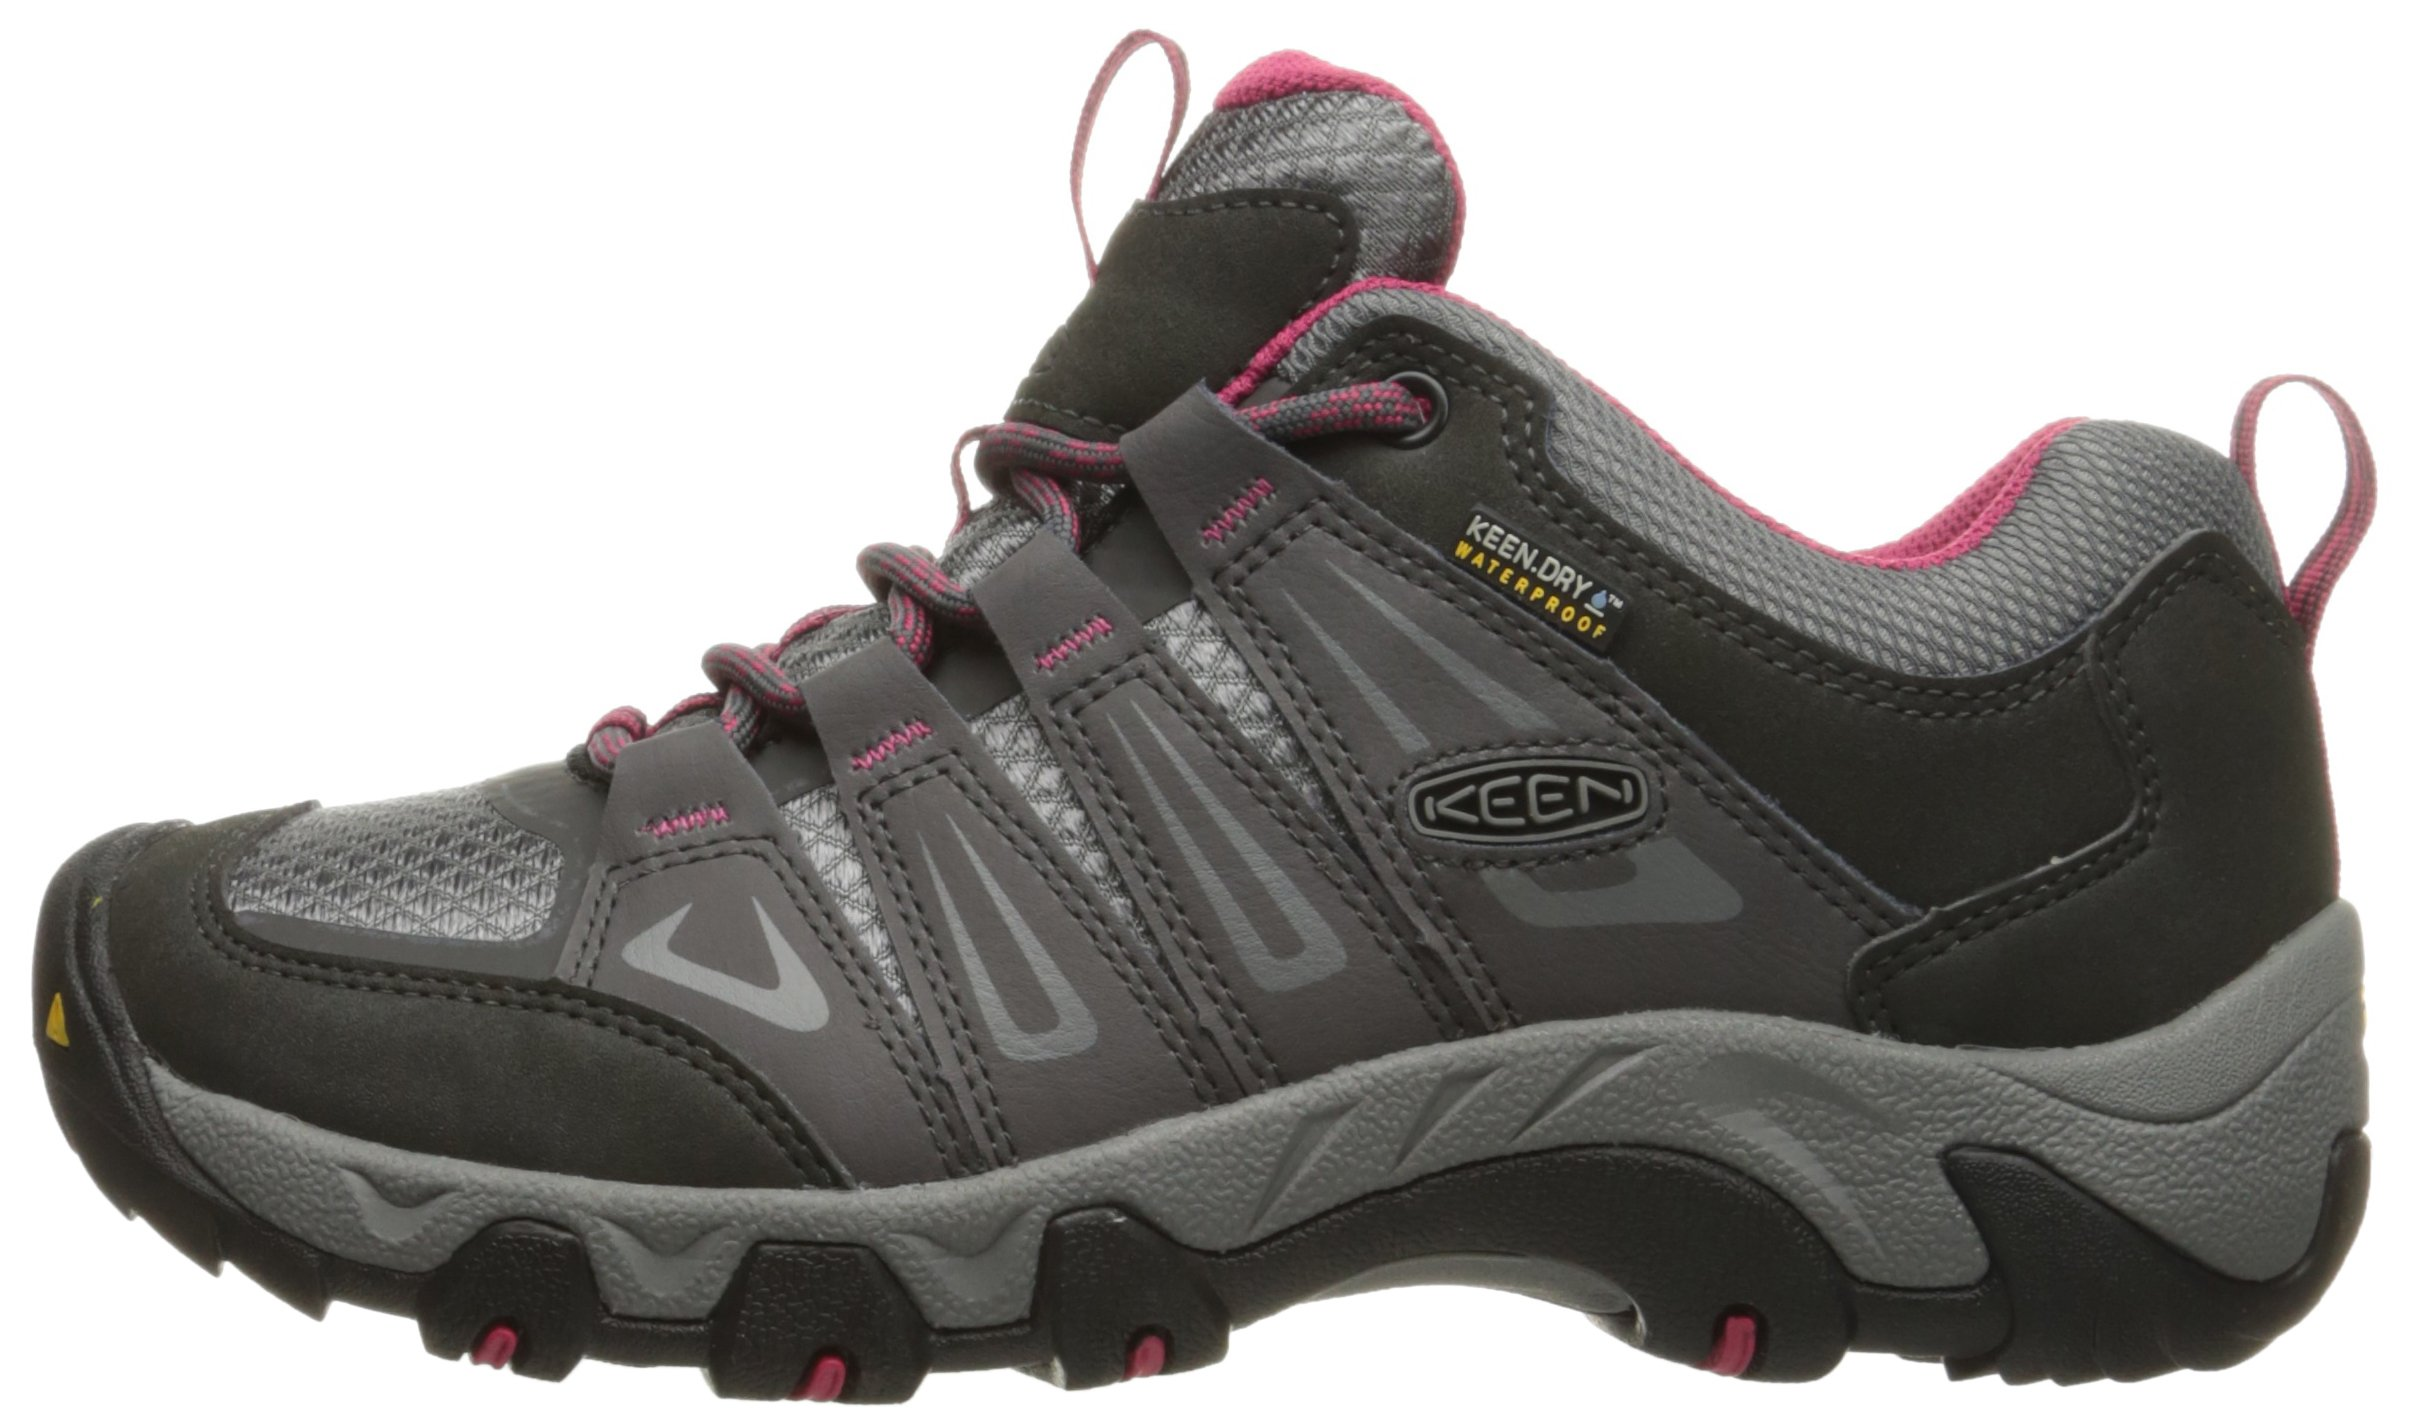 KEEN Women's Oakridge Waterproof Shoe, Magnet/Rose, 9 M US by KEEN (Image #5)